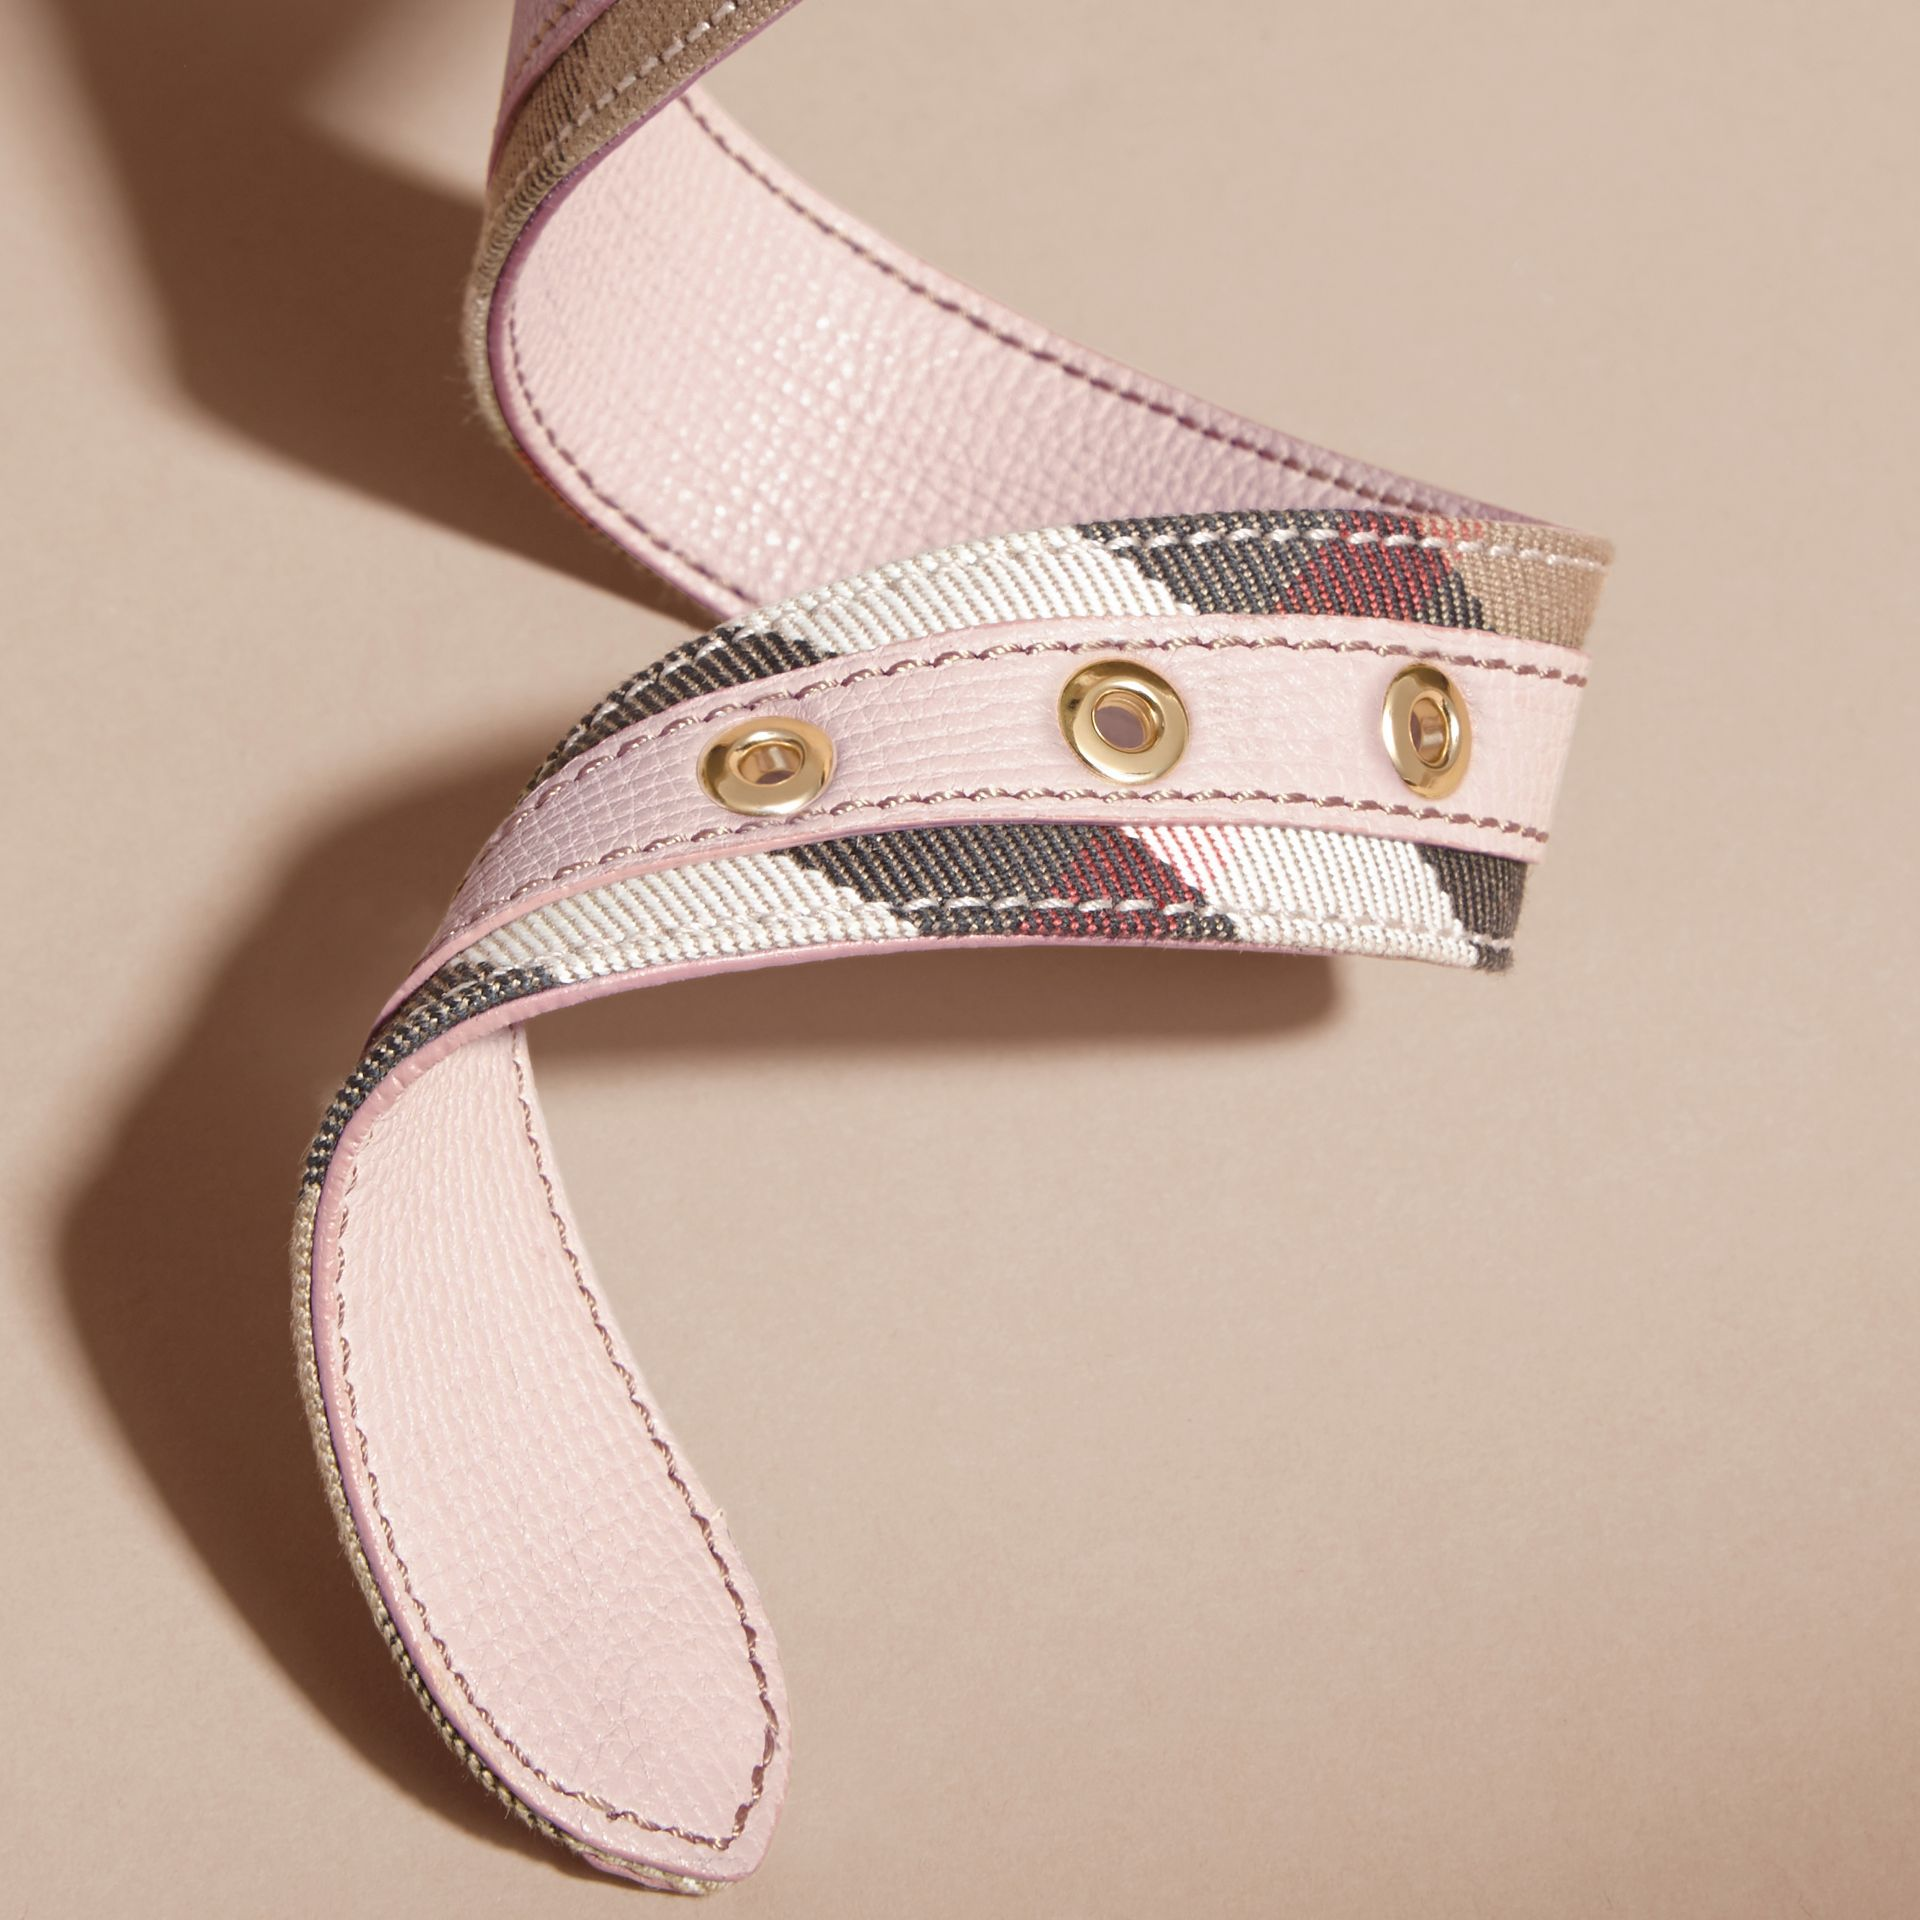 House Check and Grainy Leather Belt in Camel/pale Orchid - Women | Burberry Singapore - gallery image 3